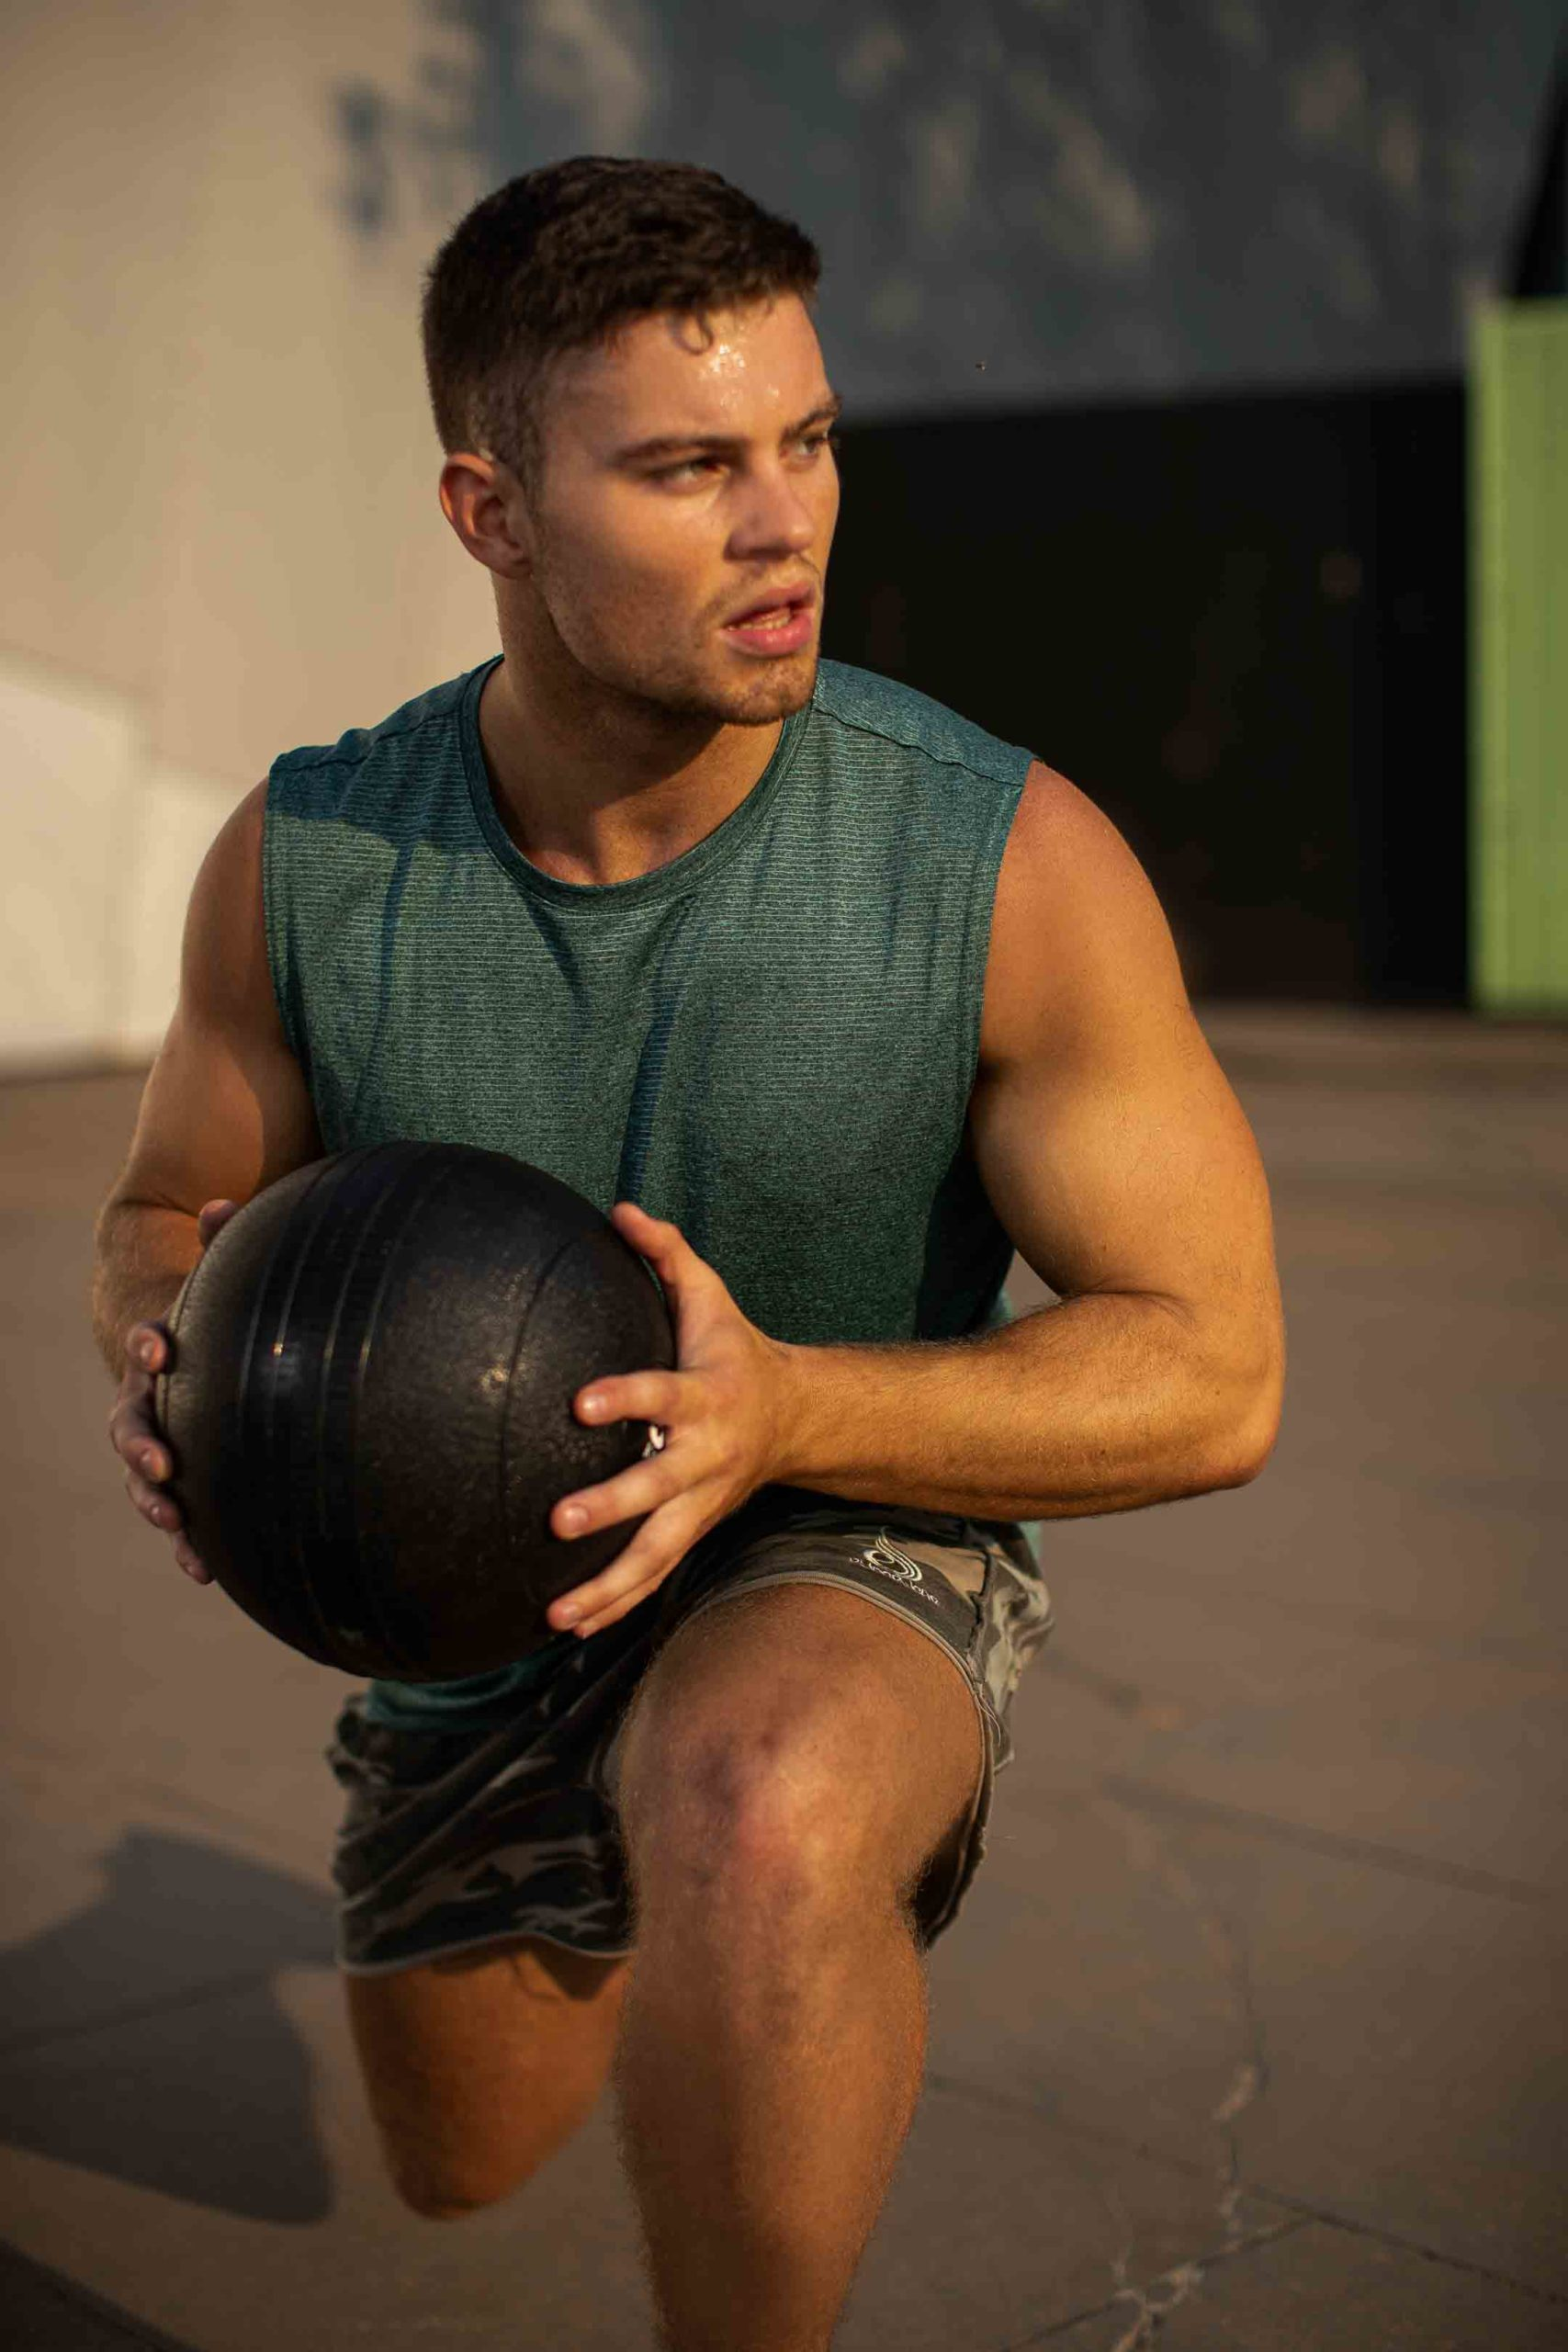 Sean lunging with a medicine ball